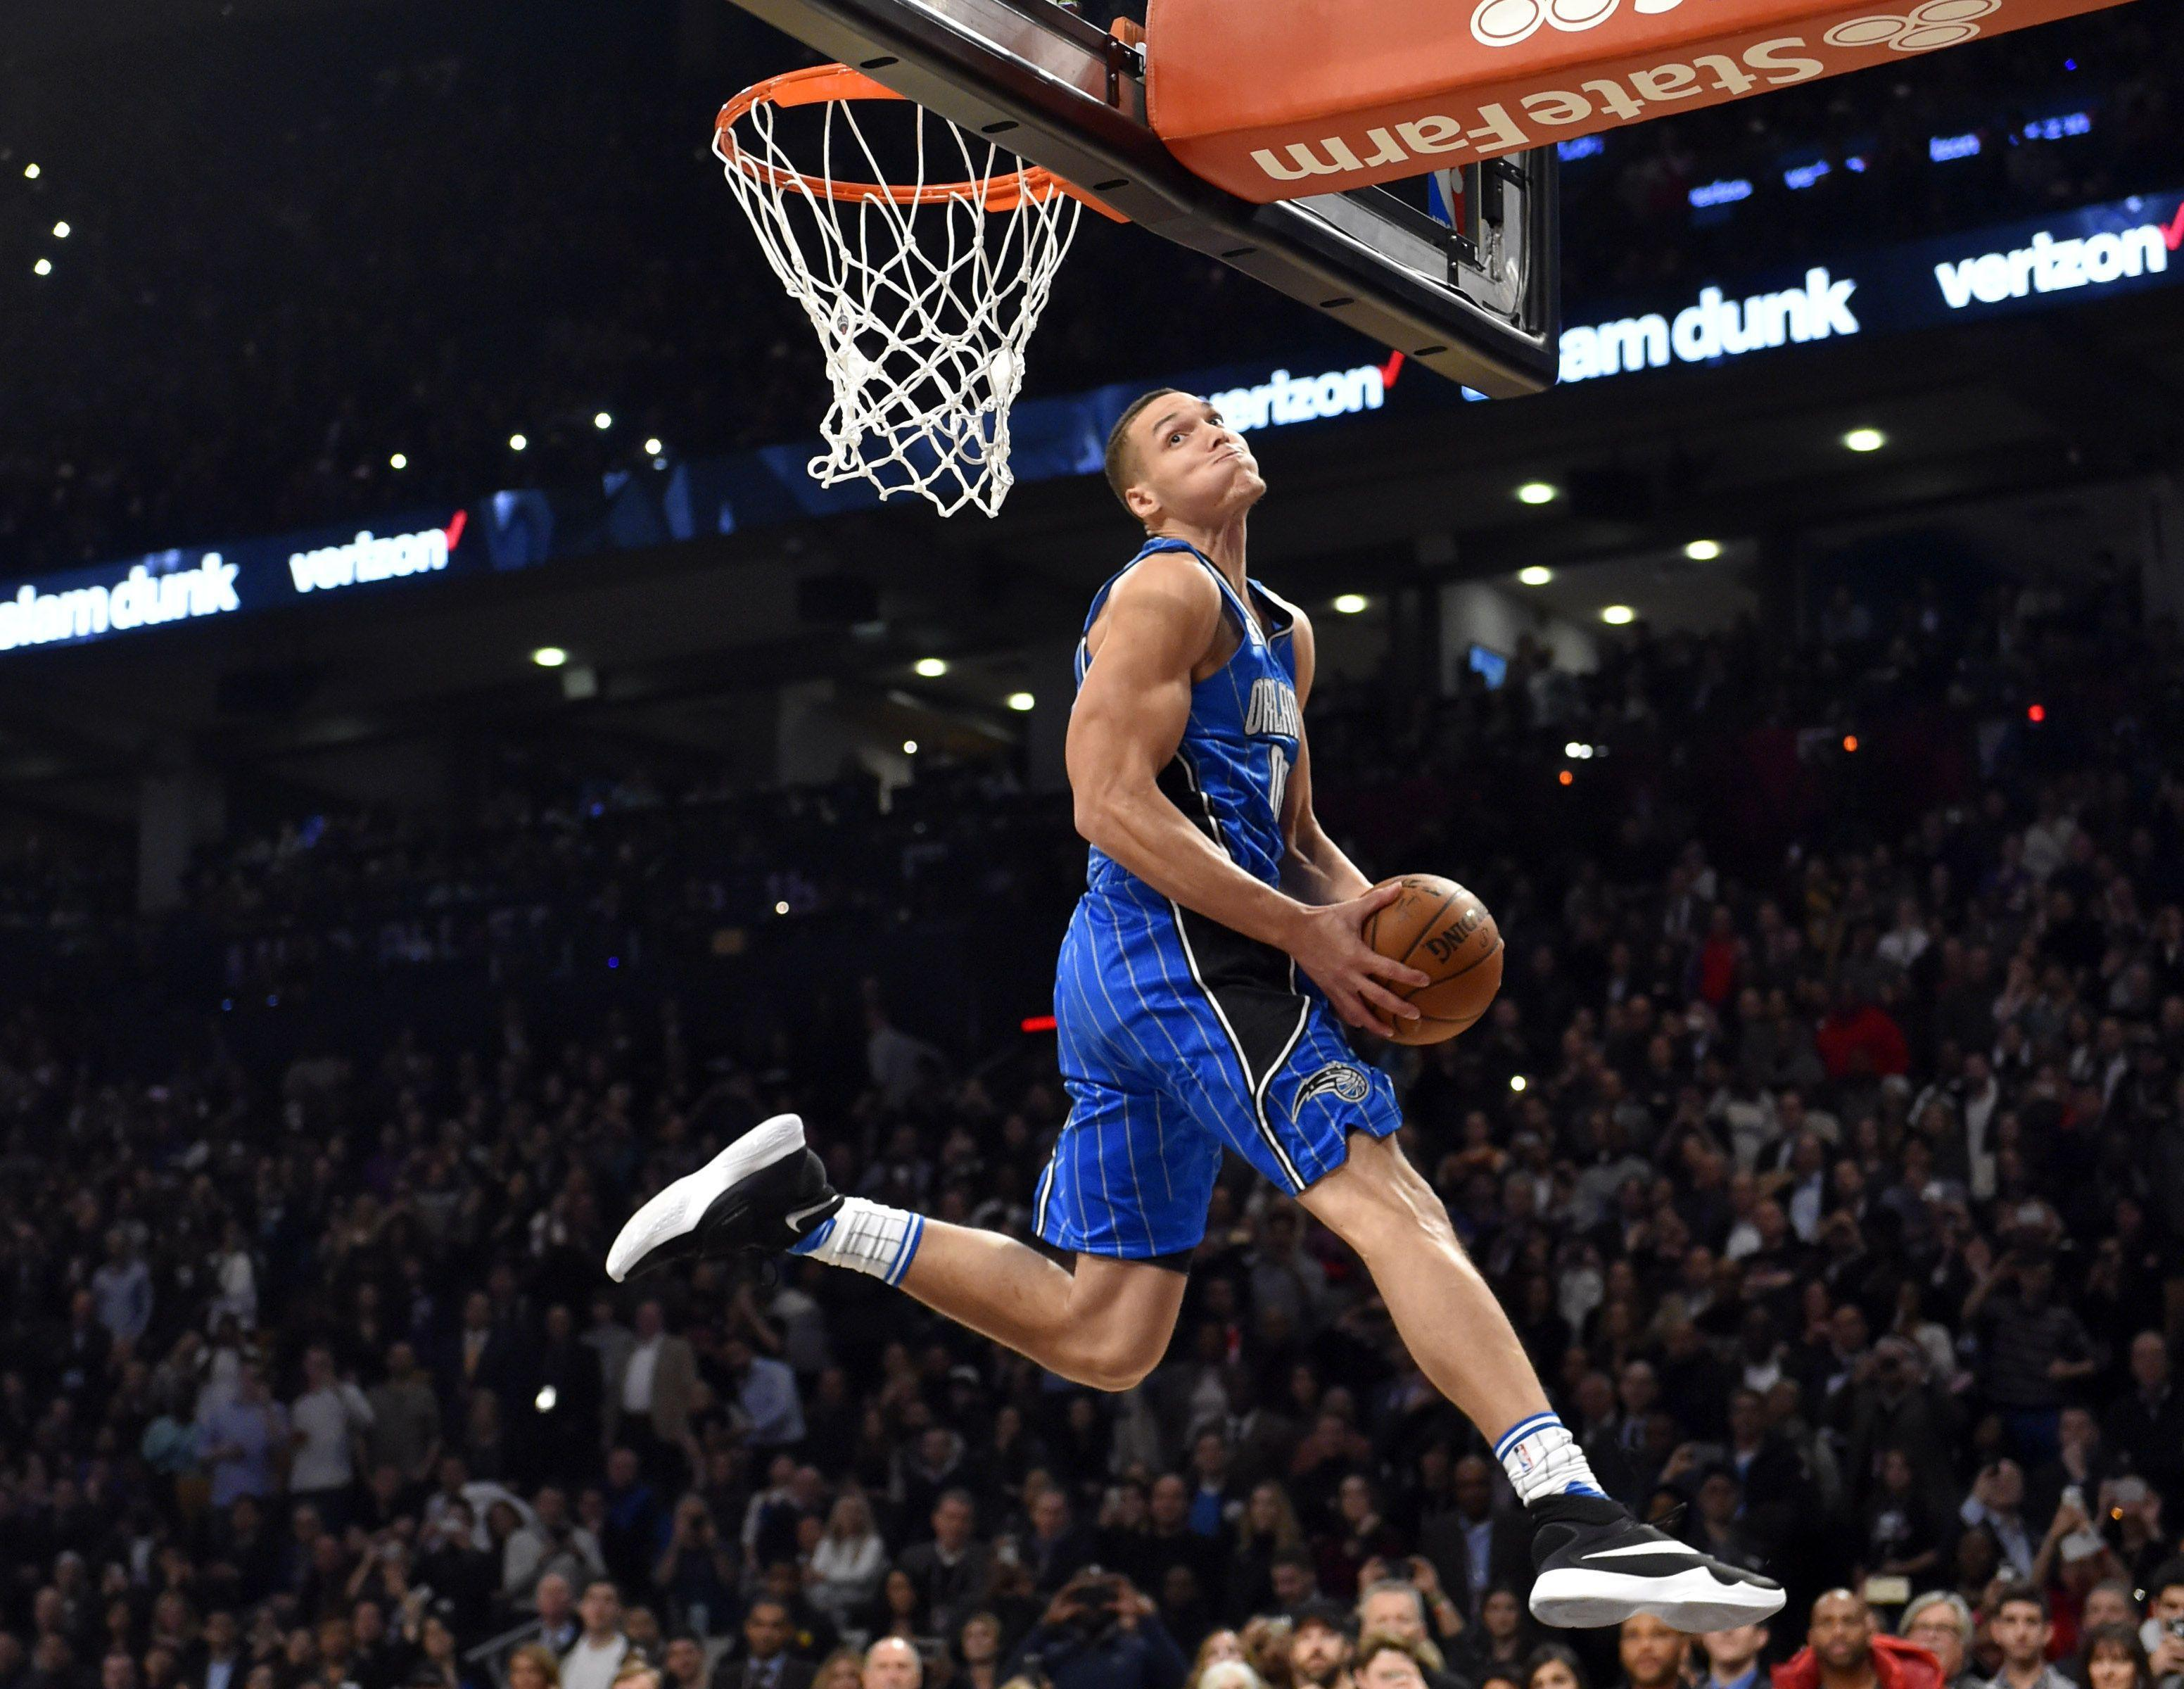 The 2016 NBA Dunk Contest in 7 astonishing photos - SBNation.com